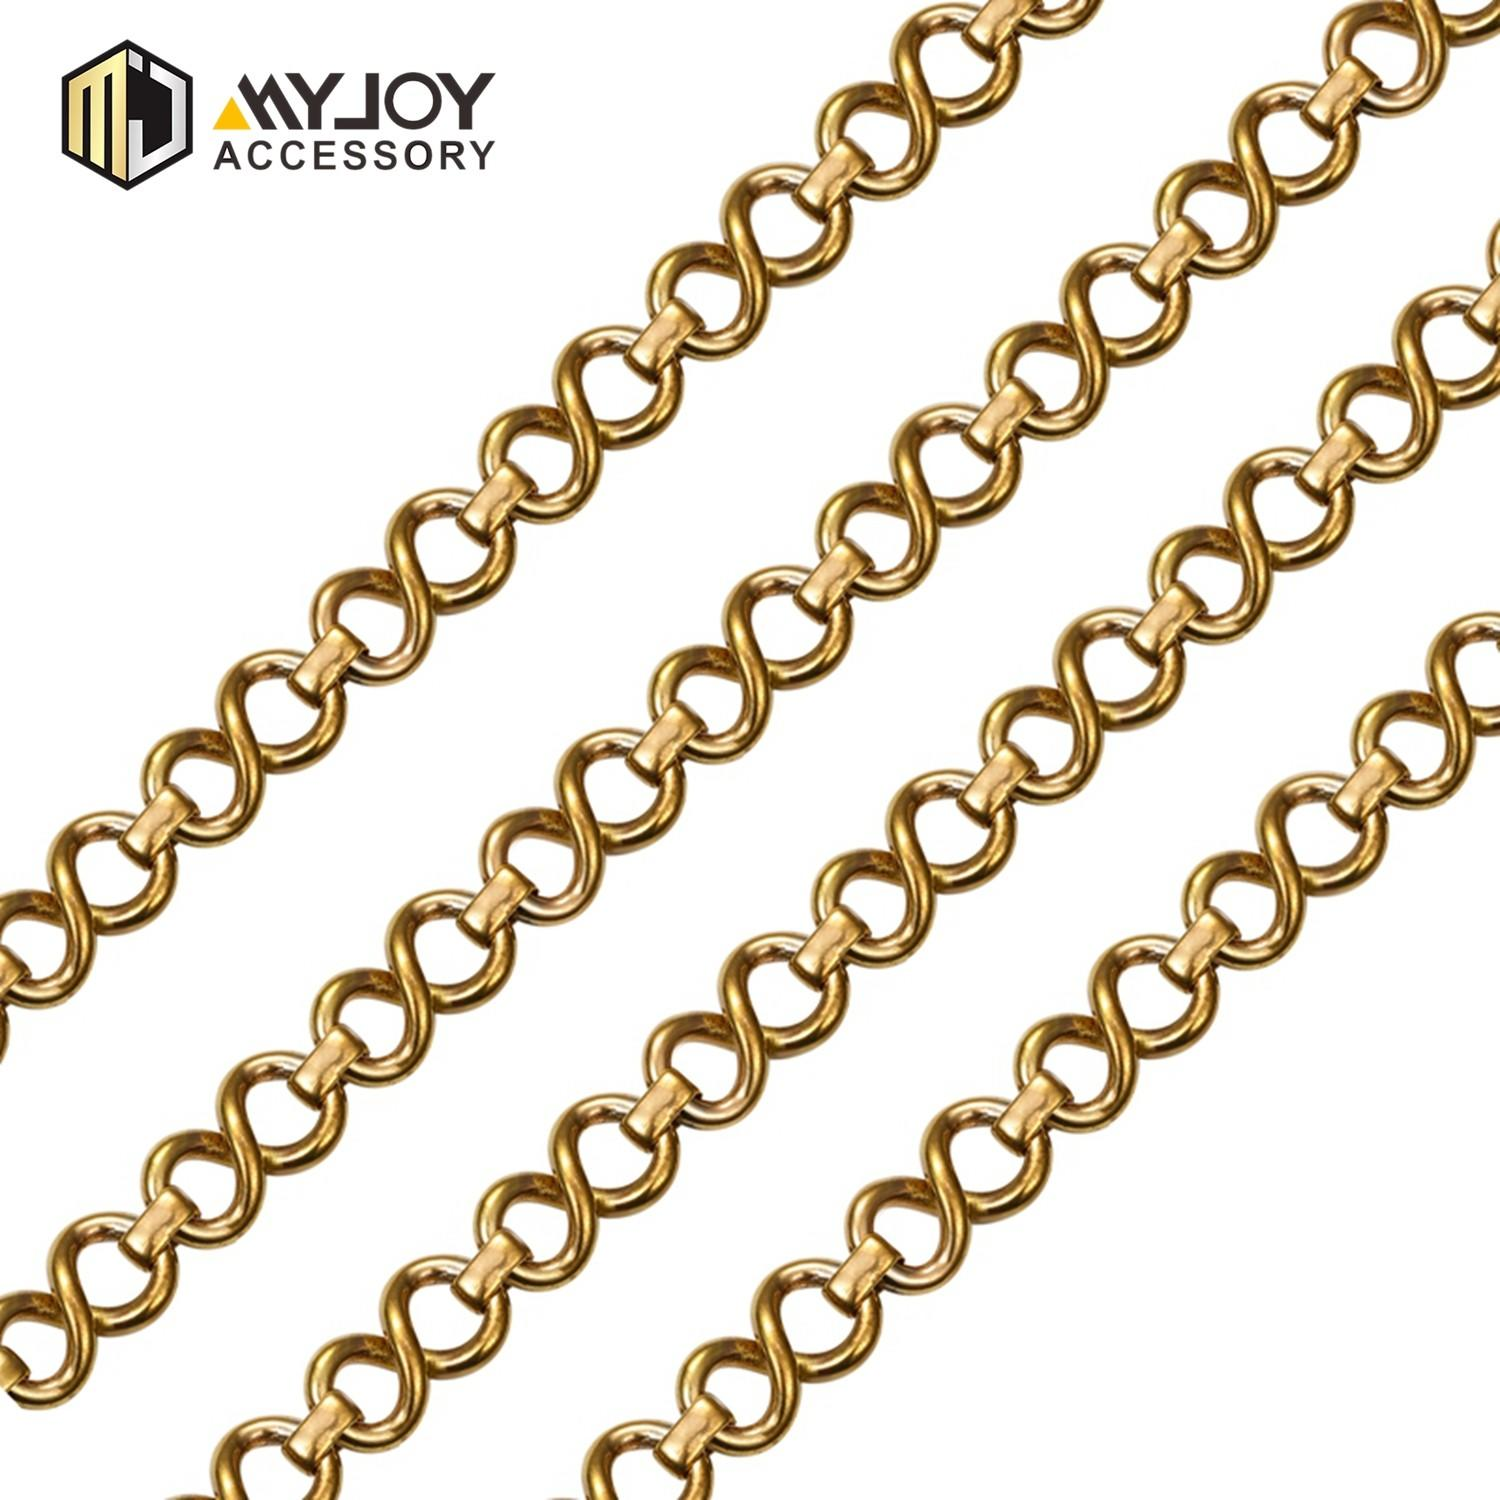 MYJOY Latest strap chain Supply for handbag